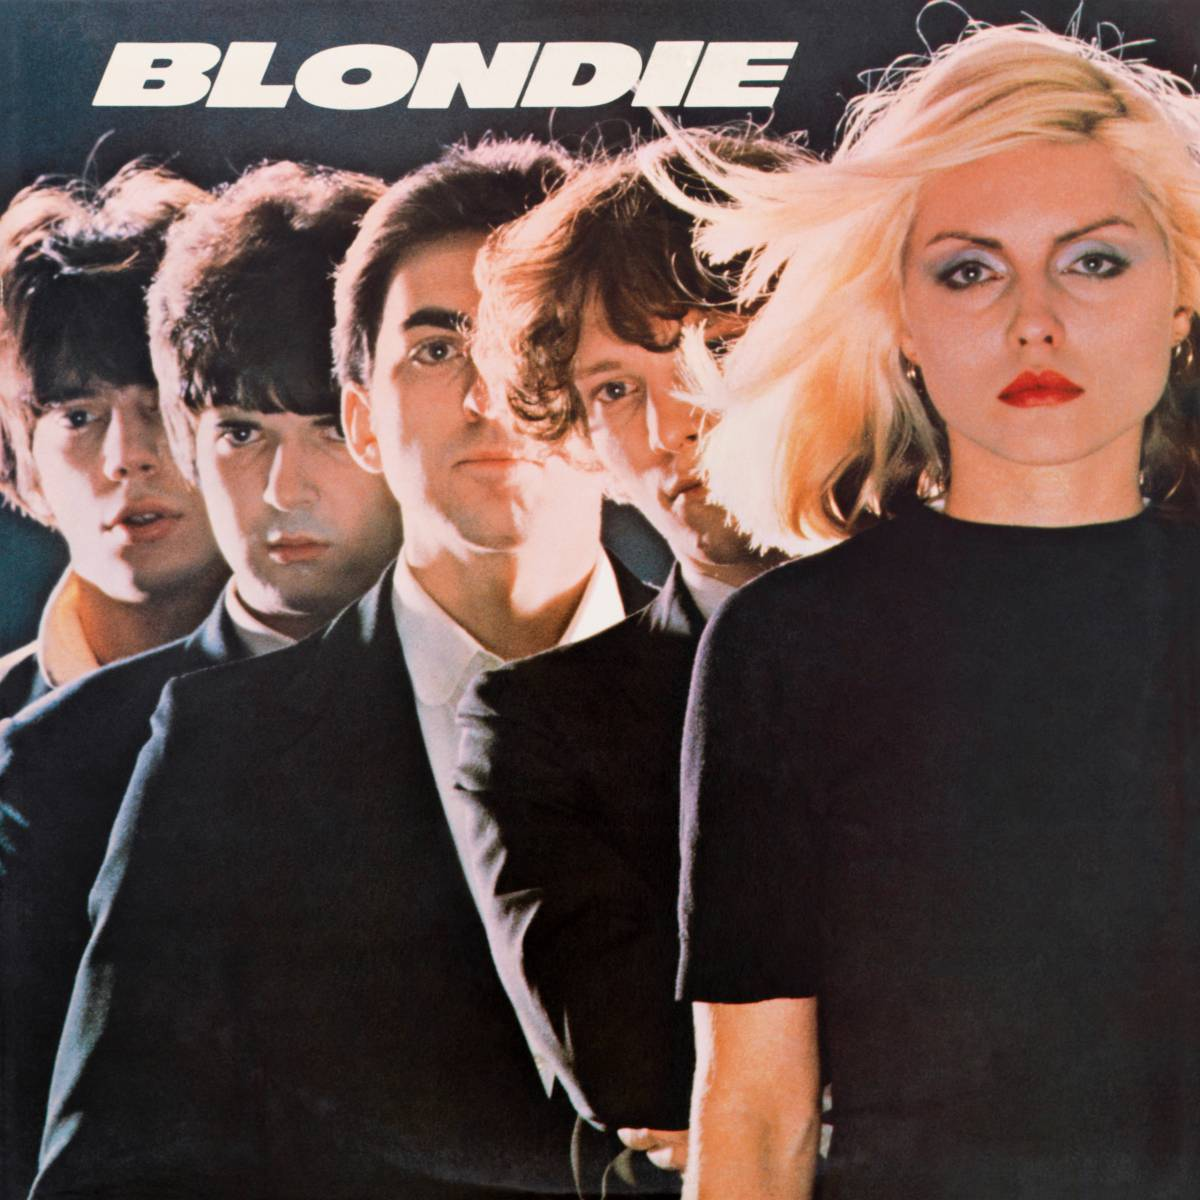 Blondie cover music